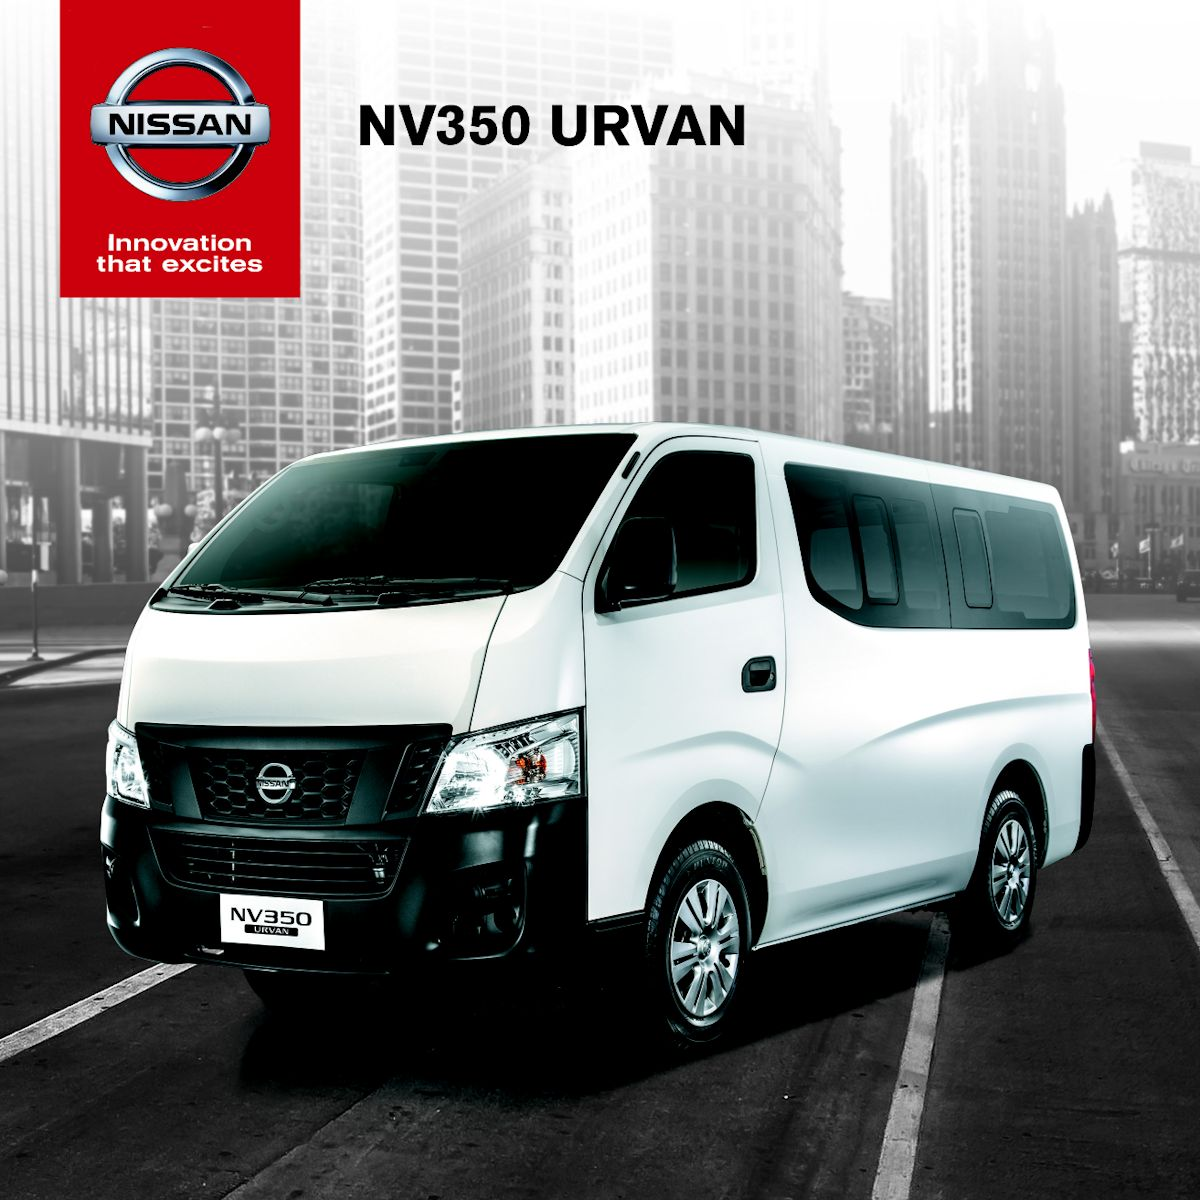 such as precision grey black obsidian and tiger eye brown are available with a three month waiting time all nissan nv350 urvan are made in japan